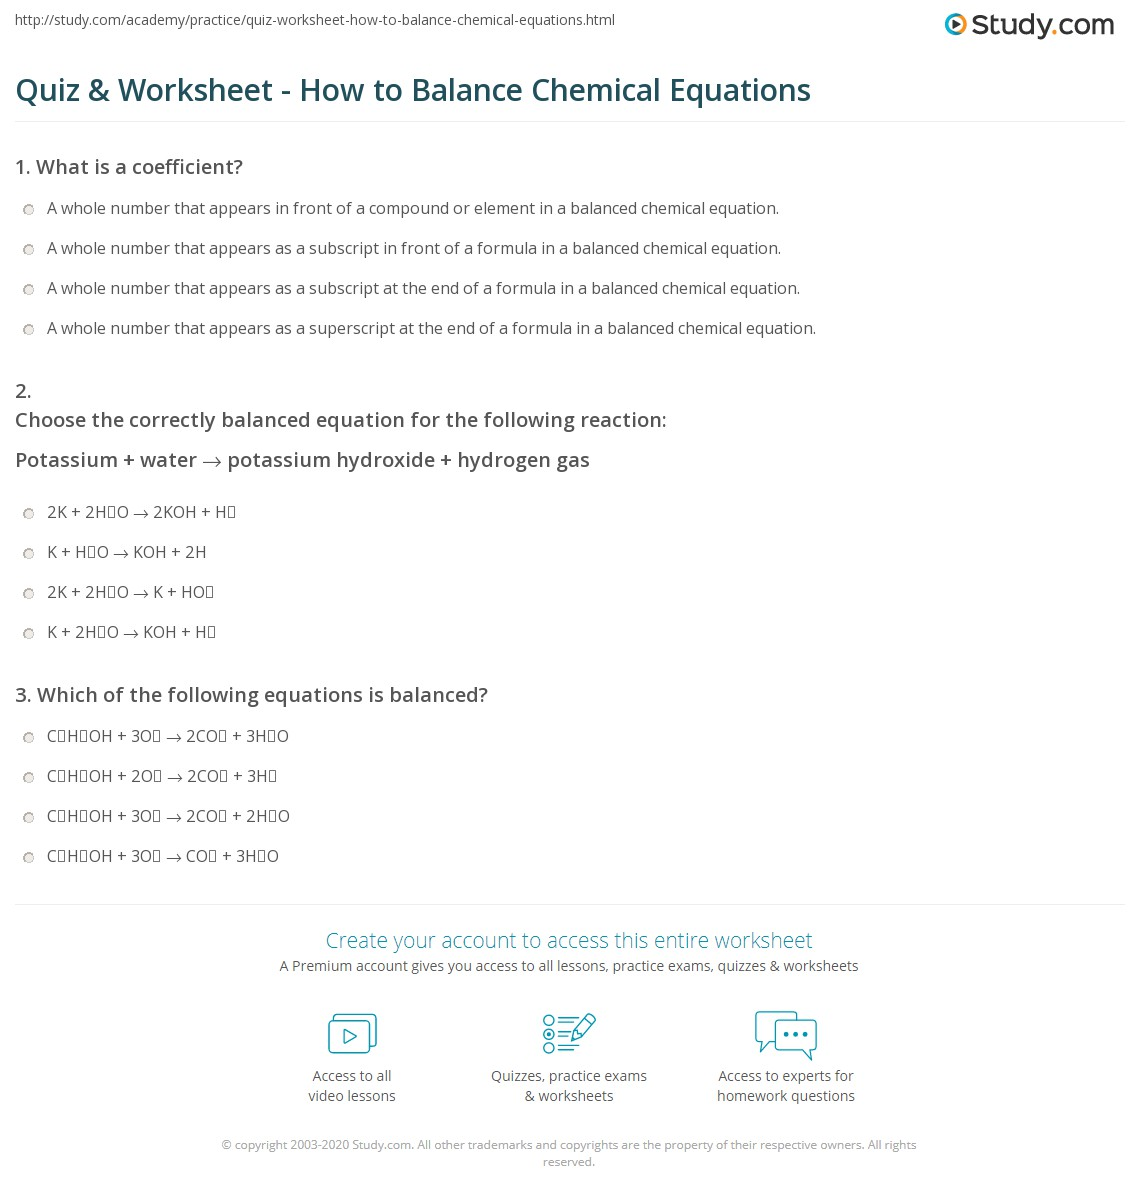 Quiz Worksheet How to Balance Chemical Equations – Balancing Chemical Equations Worksheet 1 Answers